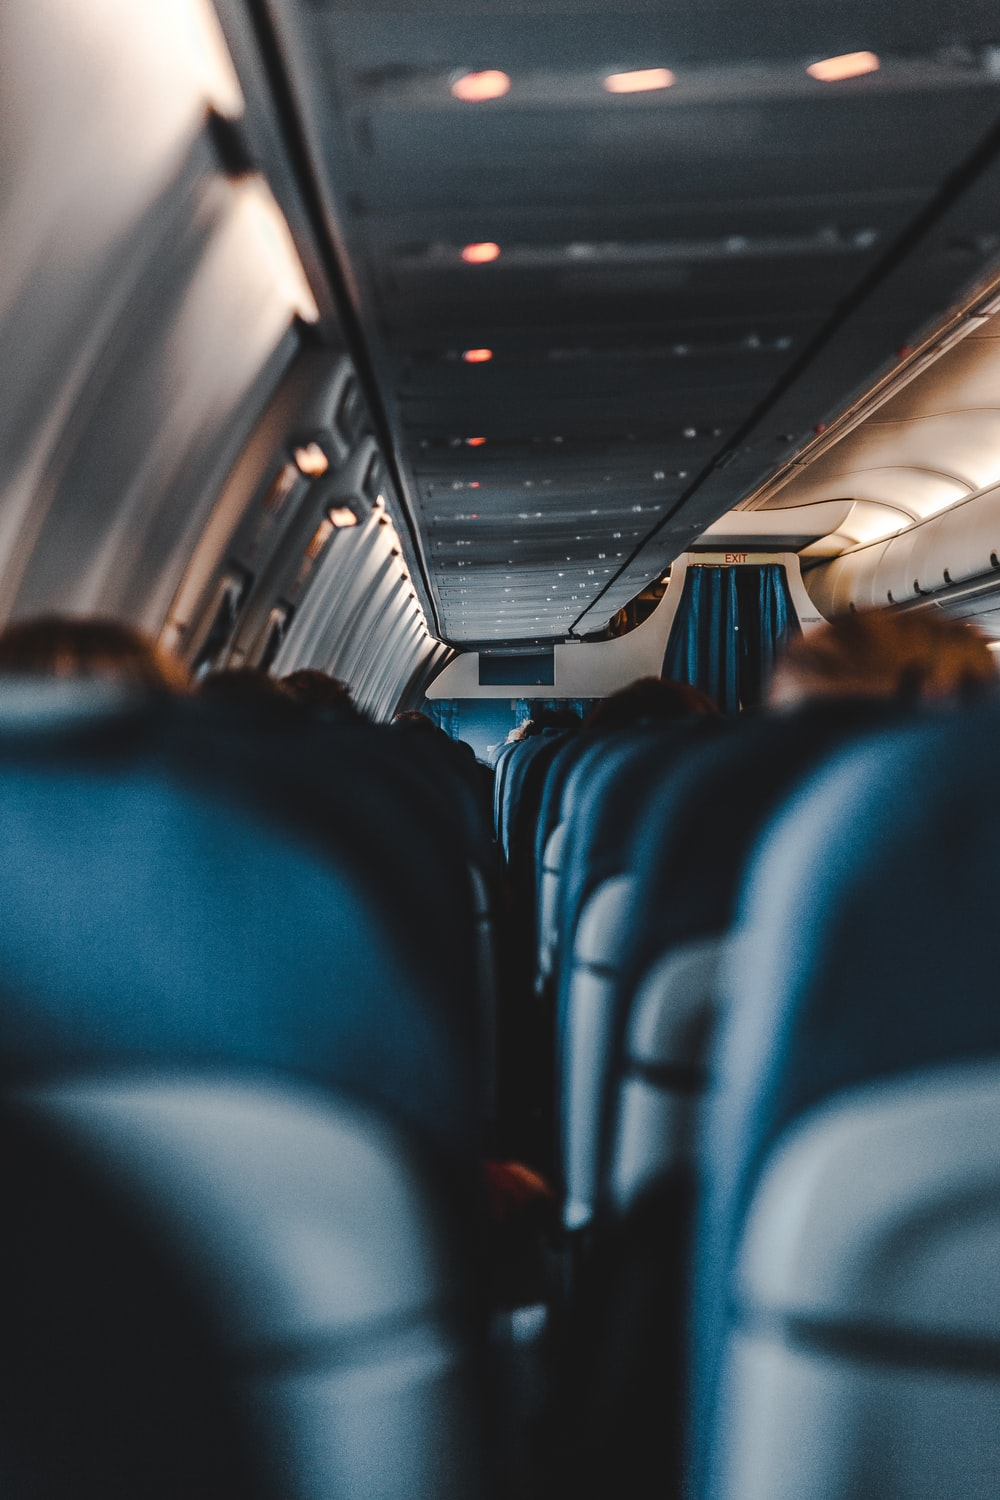 selective focus photography of airplane